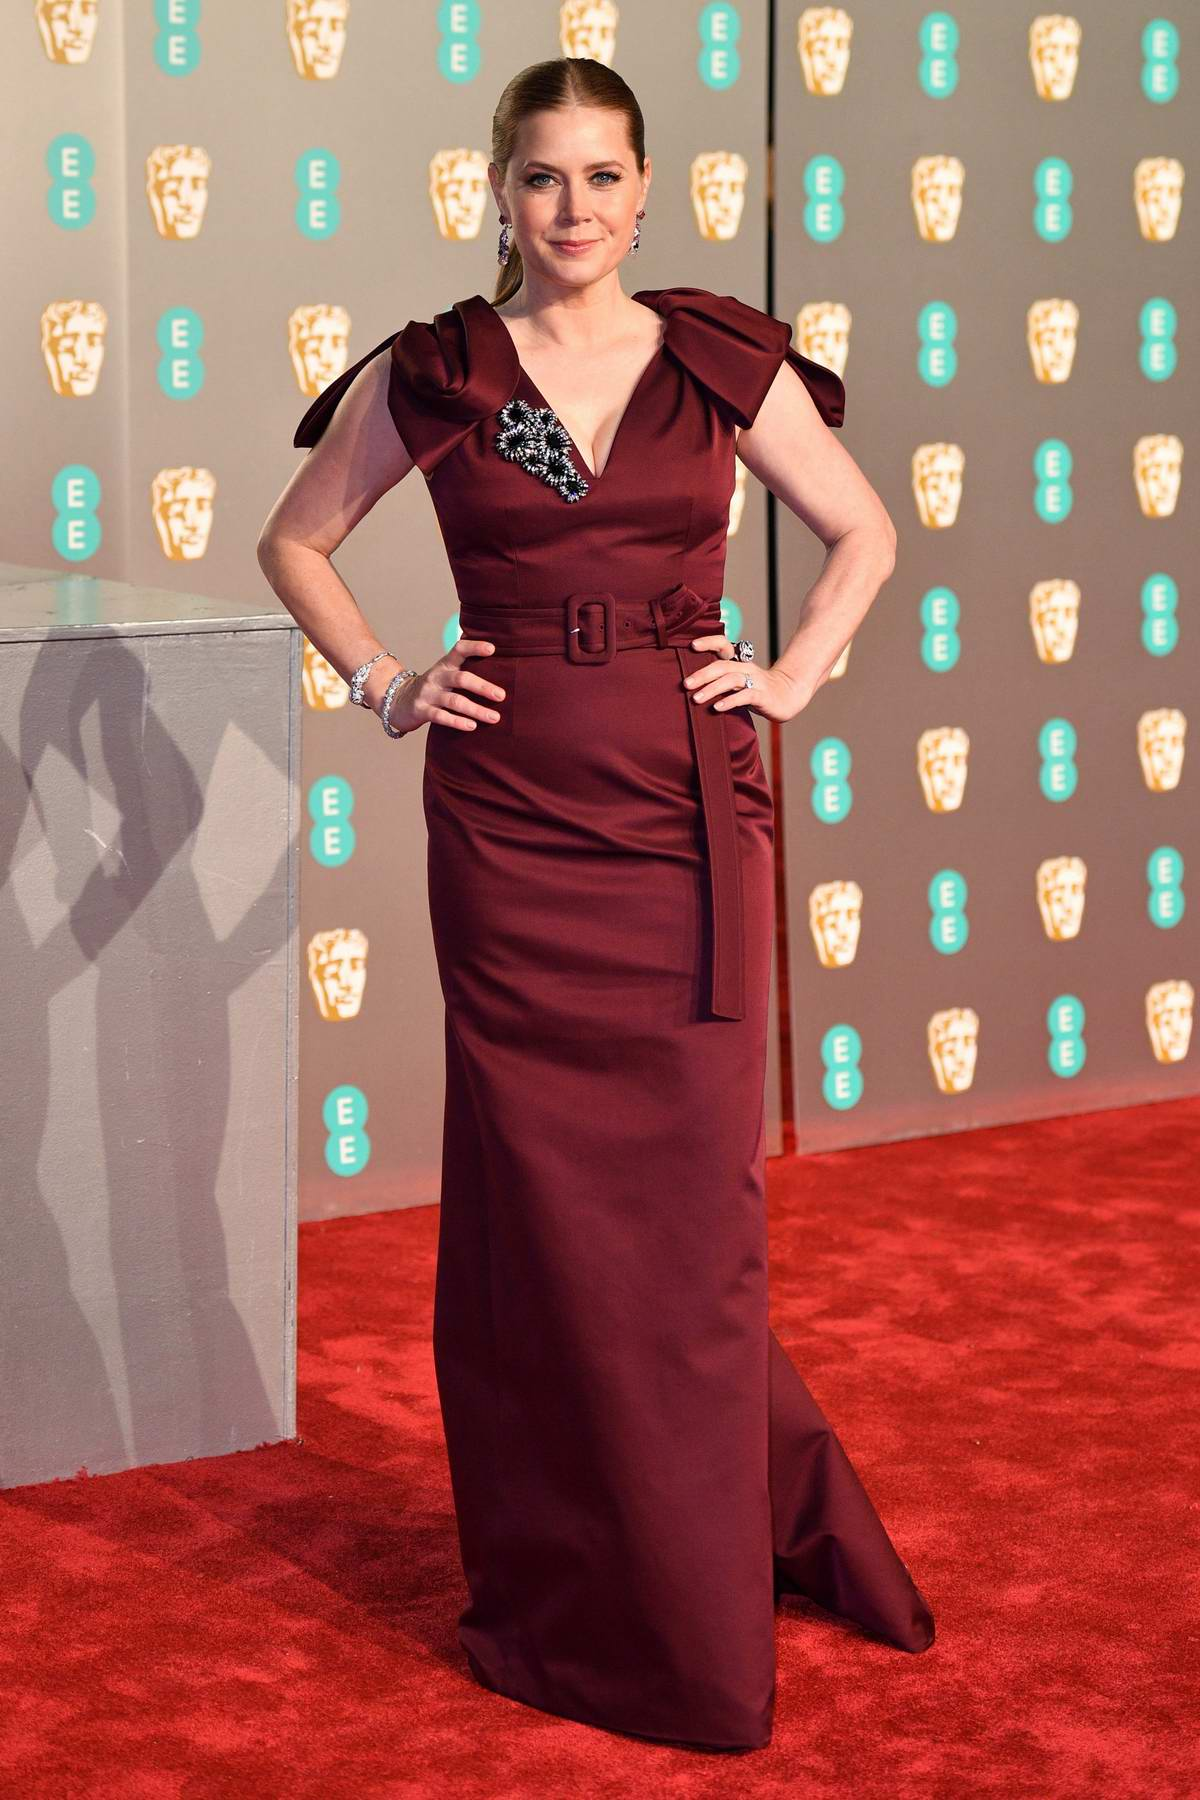 Amy Adams attends the 72nd EE British Academy Film Awards (BAFTA 2019) at Royal Albert Hall in London, UK